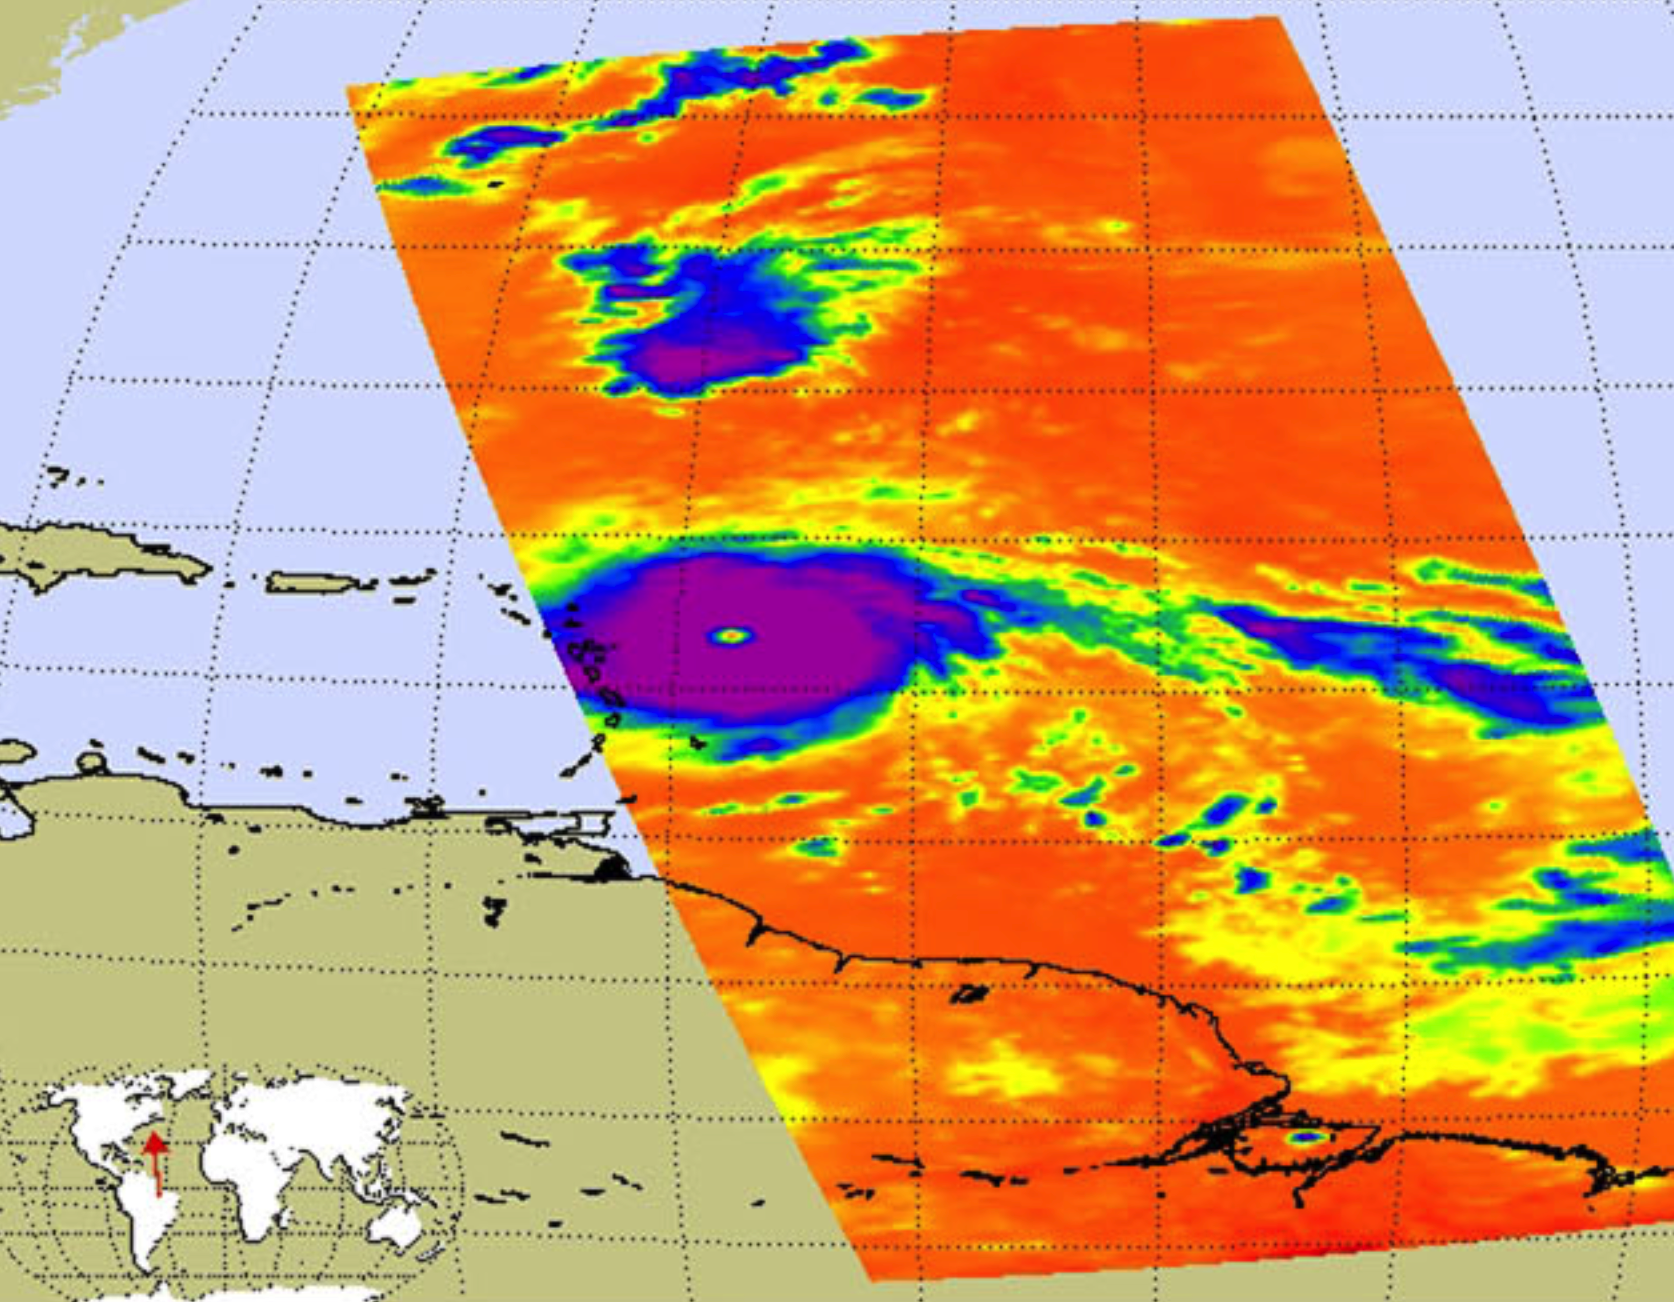 NASA Infrared Image of Irma Shows an Angry Eye